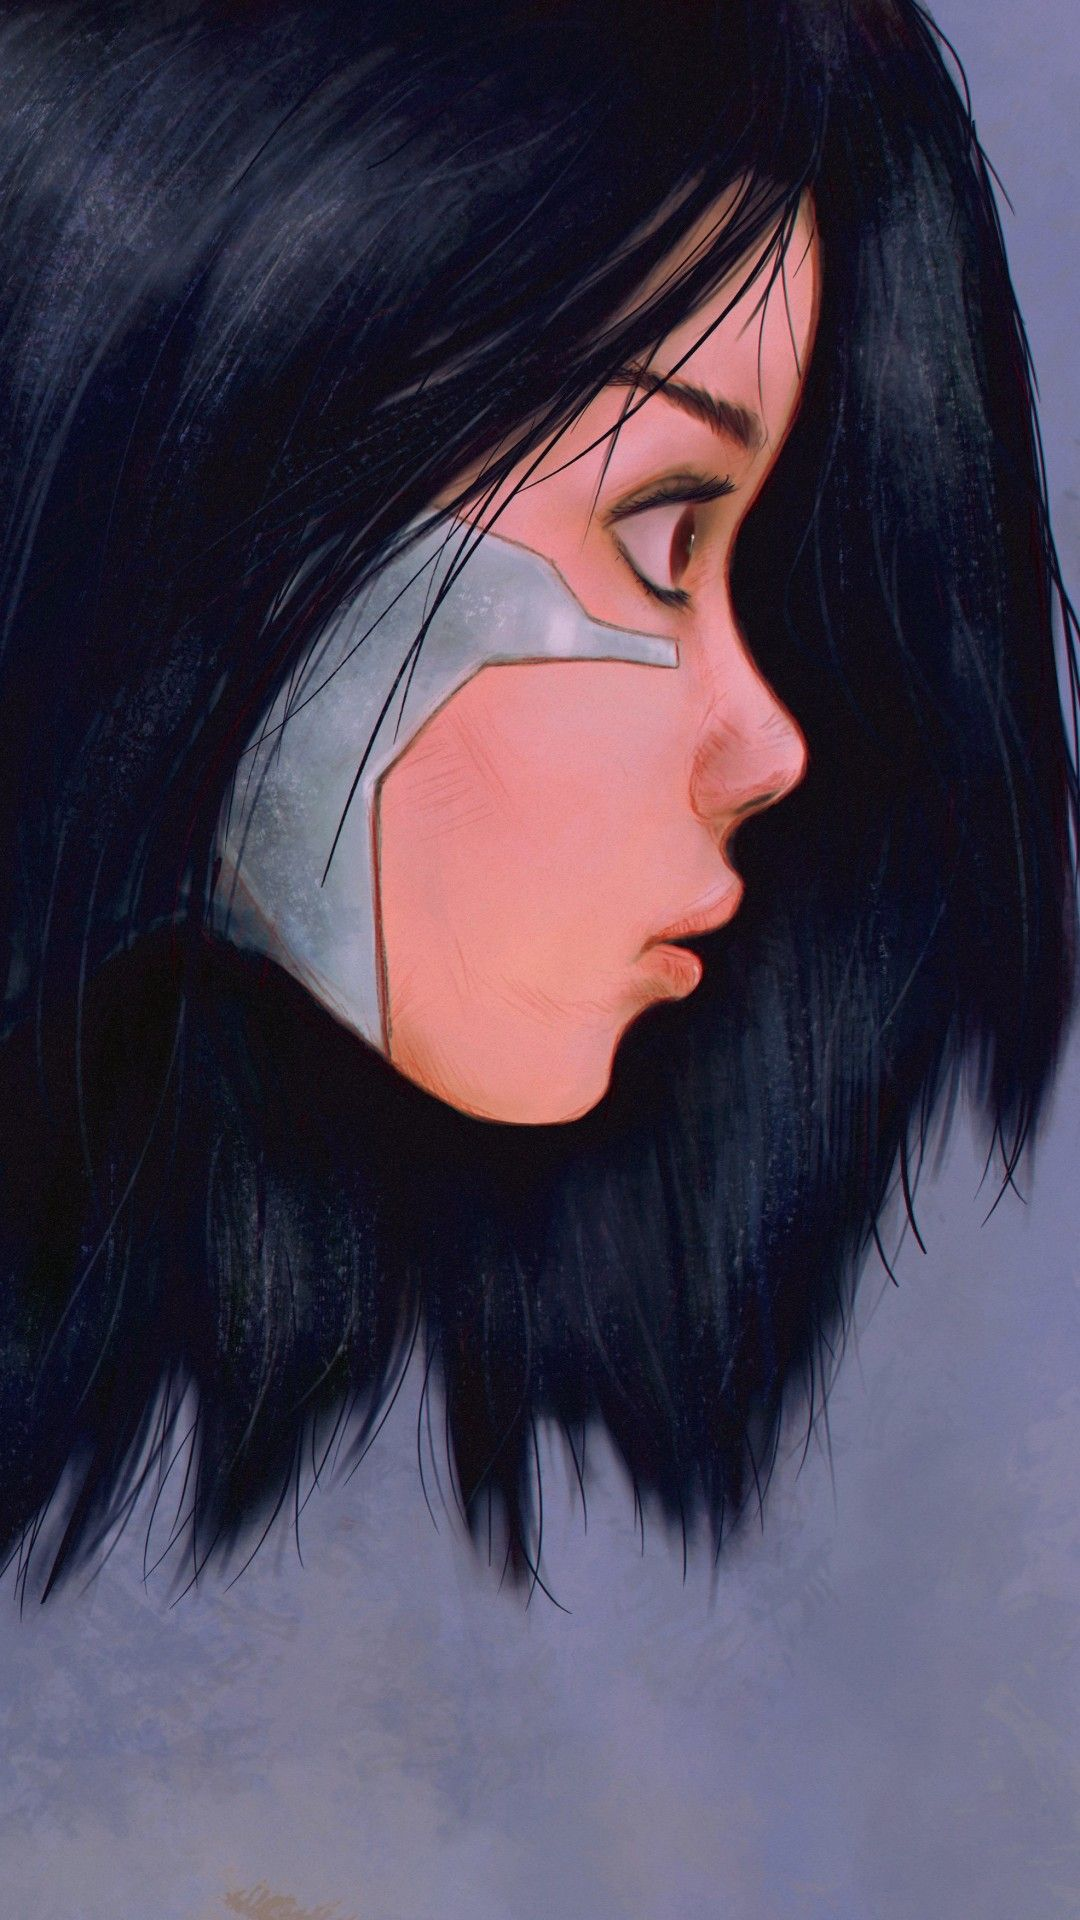 Alita Battle Angel 5k Mobile Wallpaper Iphone Android Samsung Pixel Xiaomi Hd Anime Wallpapers Mobile Wallpaper Anime Wallpaper Download